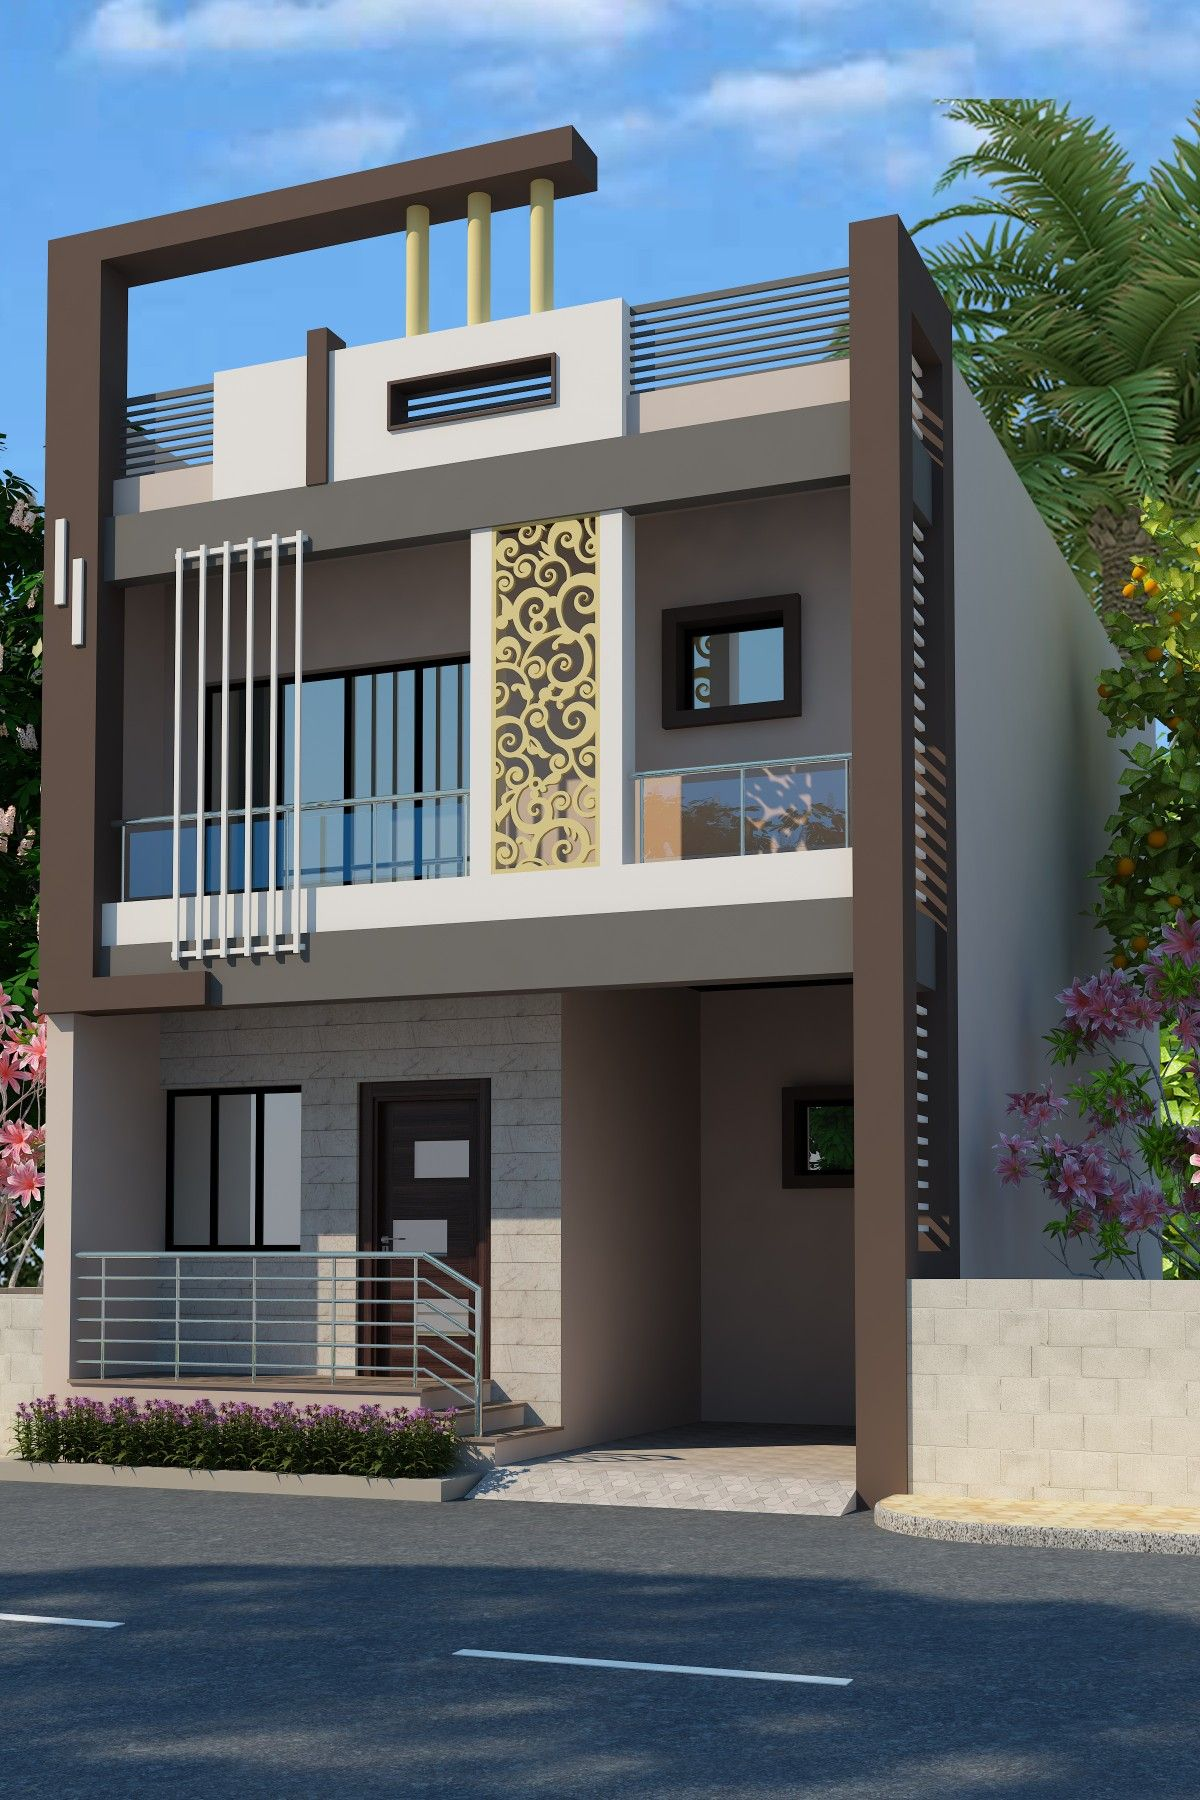 New design also front elevation designs for duplex houses in india google search rh pinterest